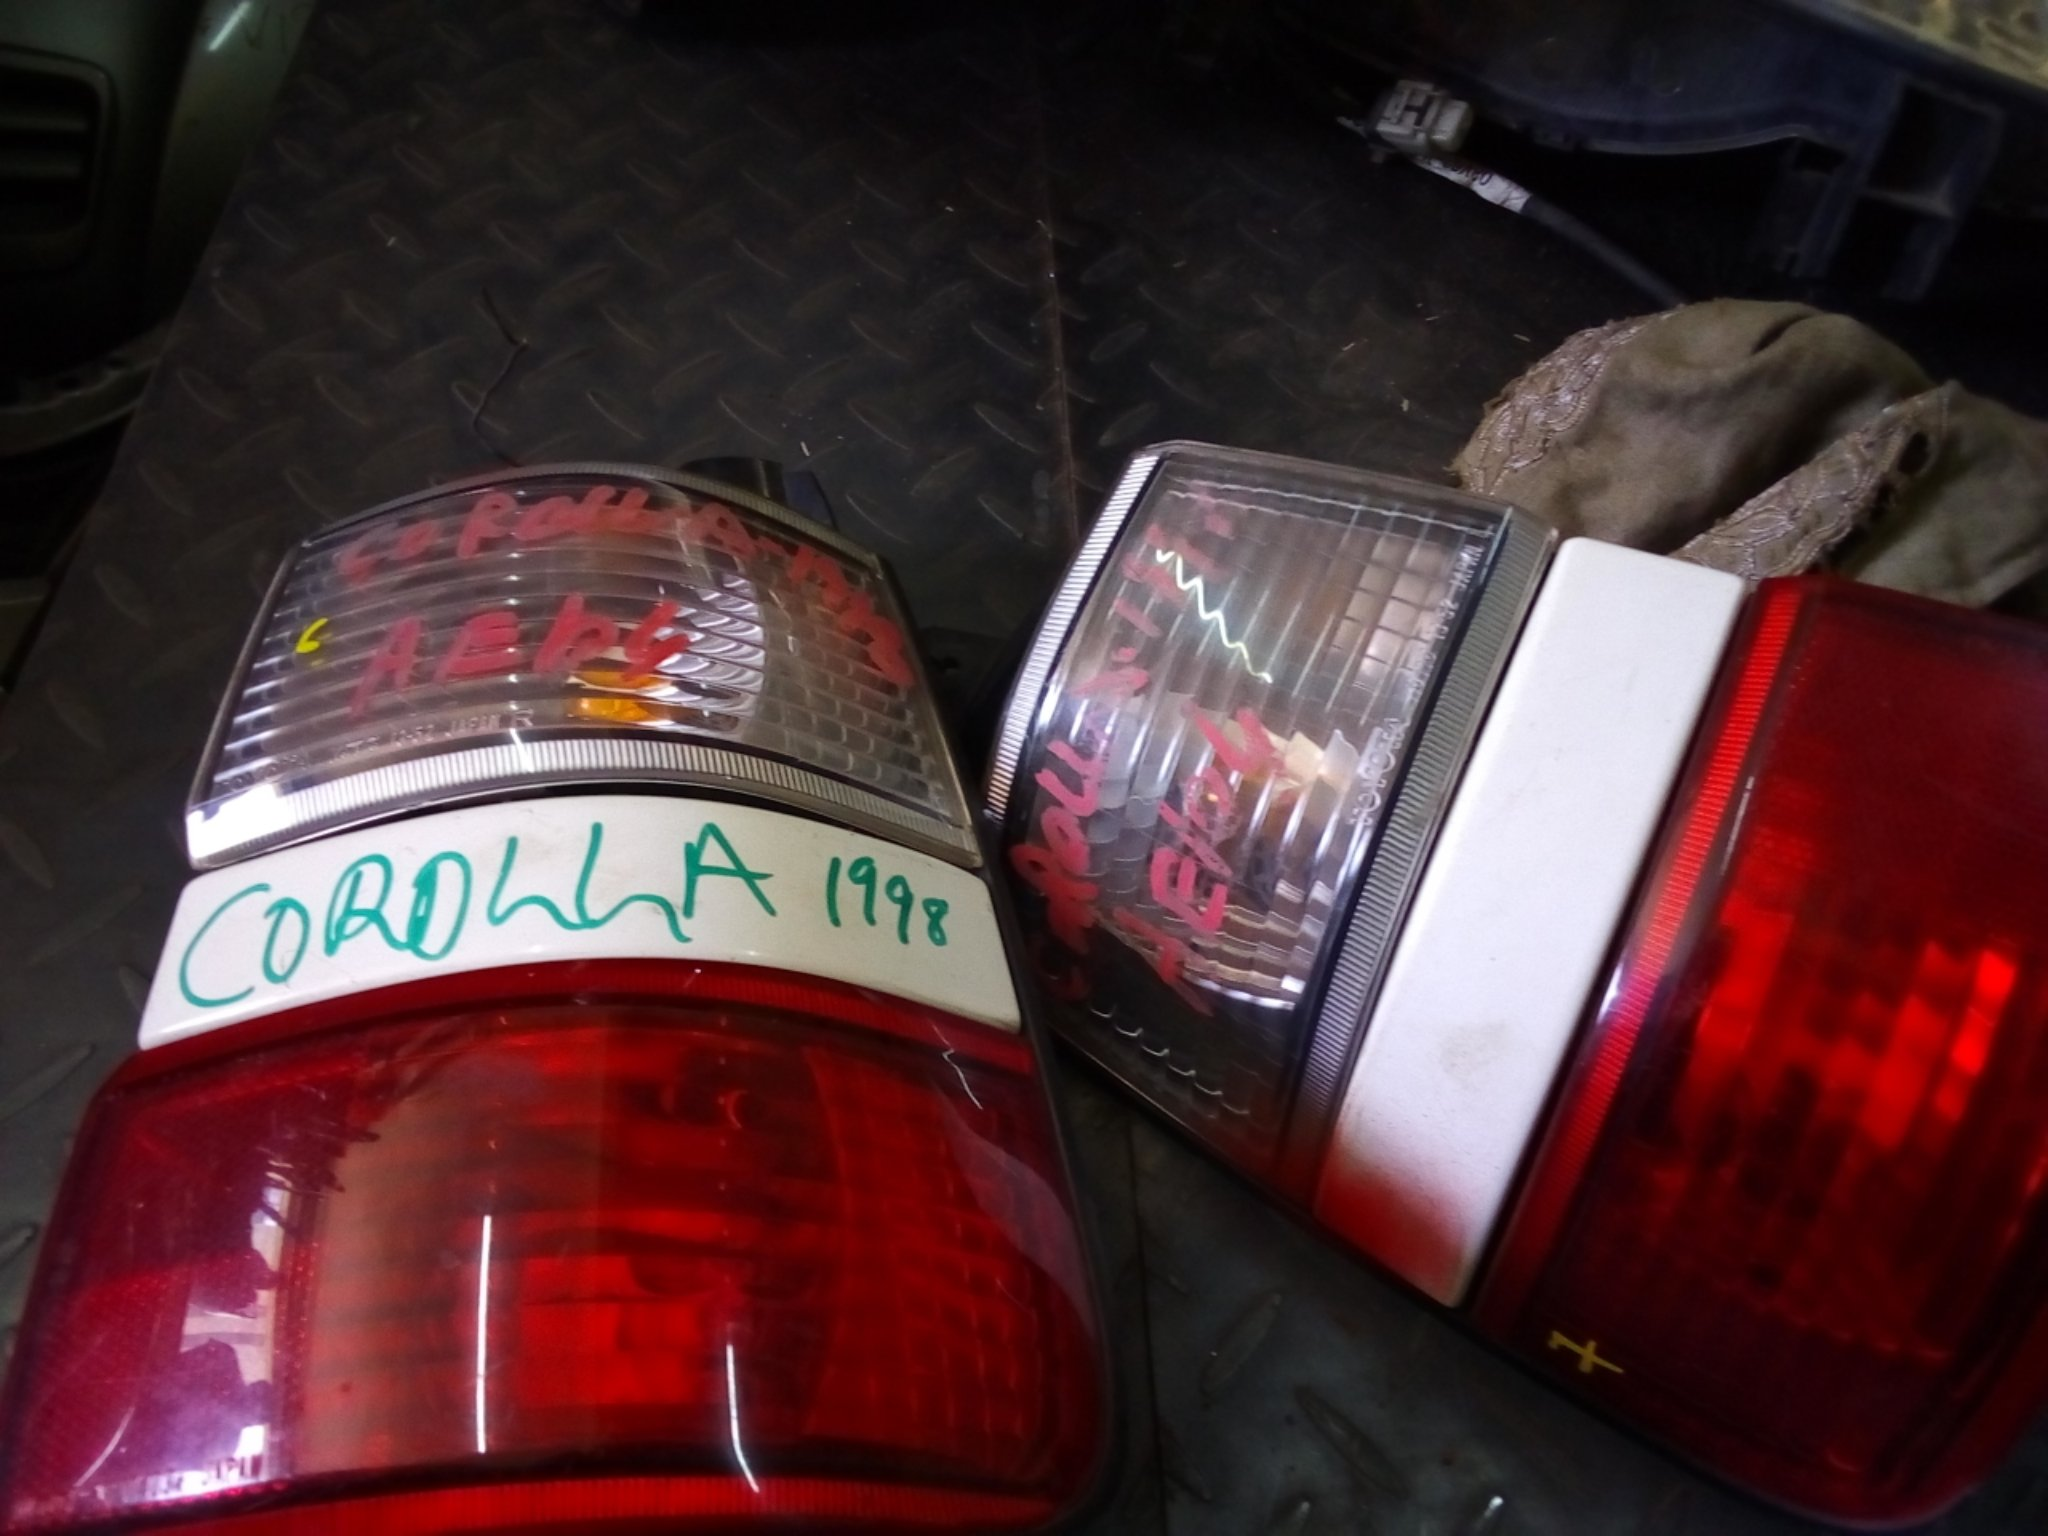 Toyota Corolla tail lights Alsy0001